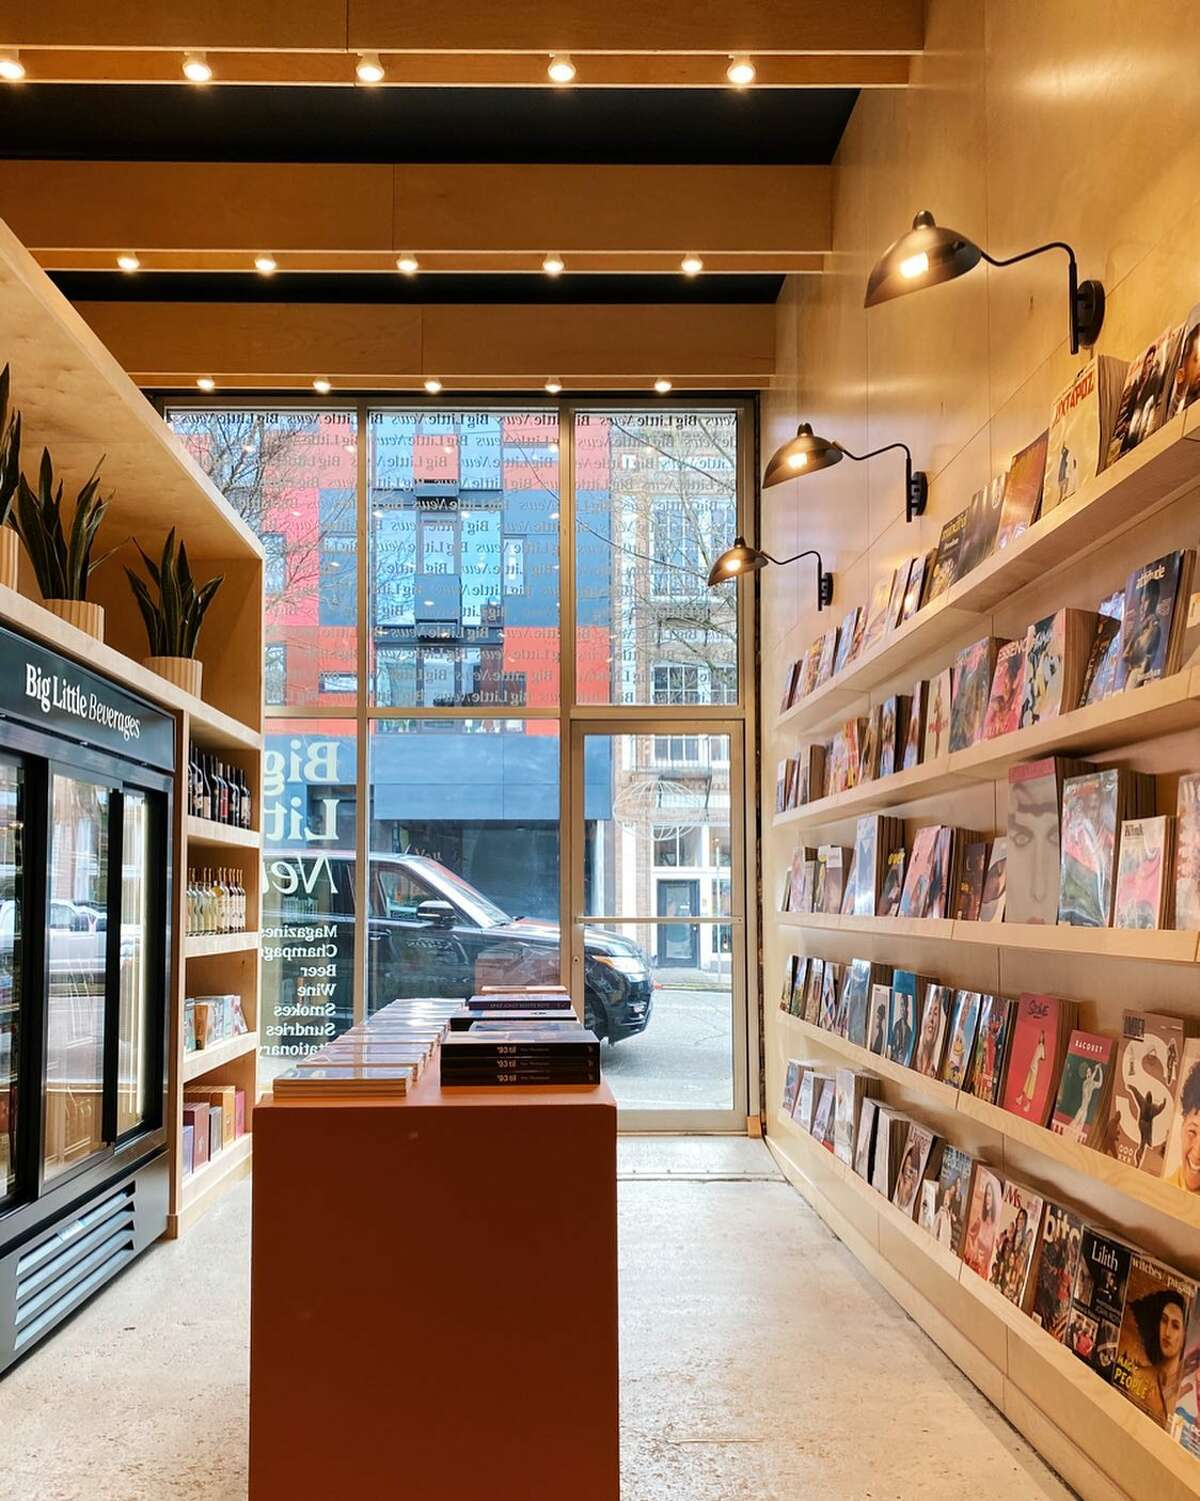 Big Little News brings 250 magazines, newspapers to the heart of Capitol Hill